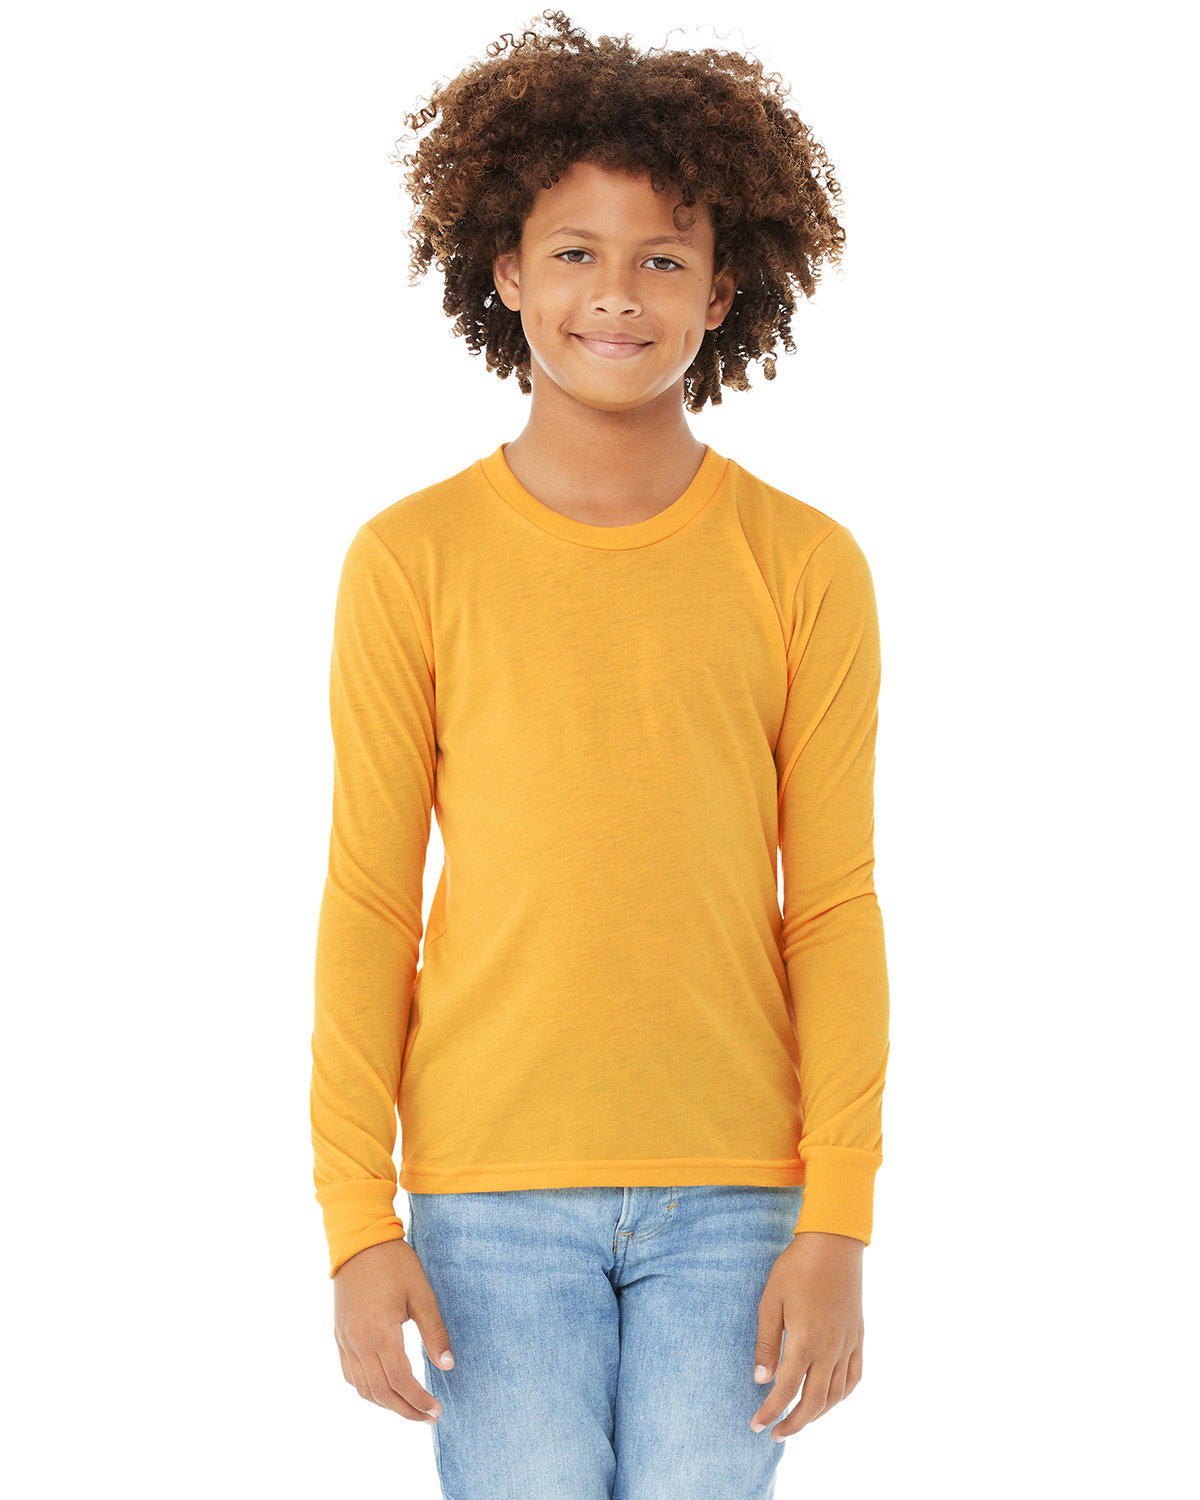 Bella + Canvas Youth Jersey Long-Sleeve T-Shirt HTHR YELLOW GOLD